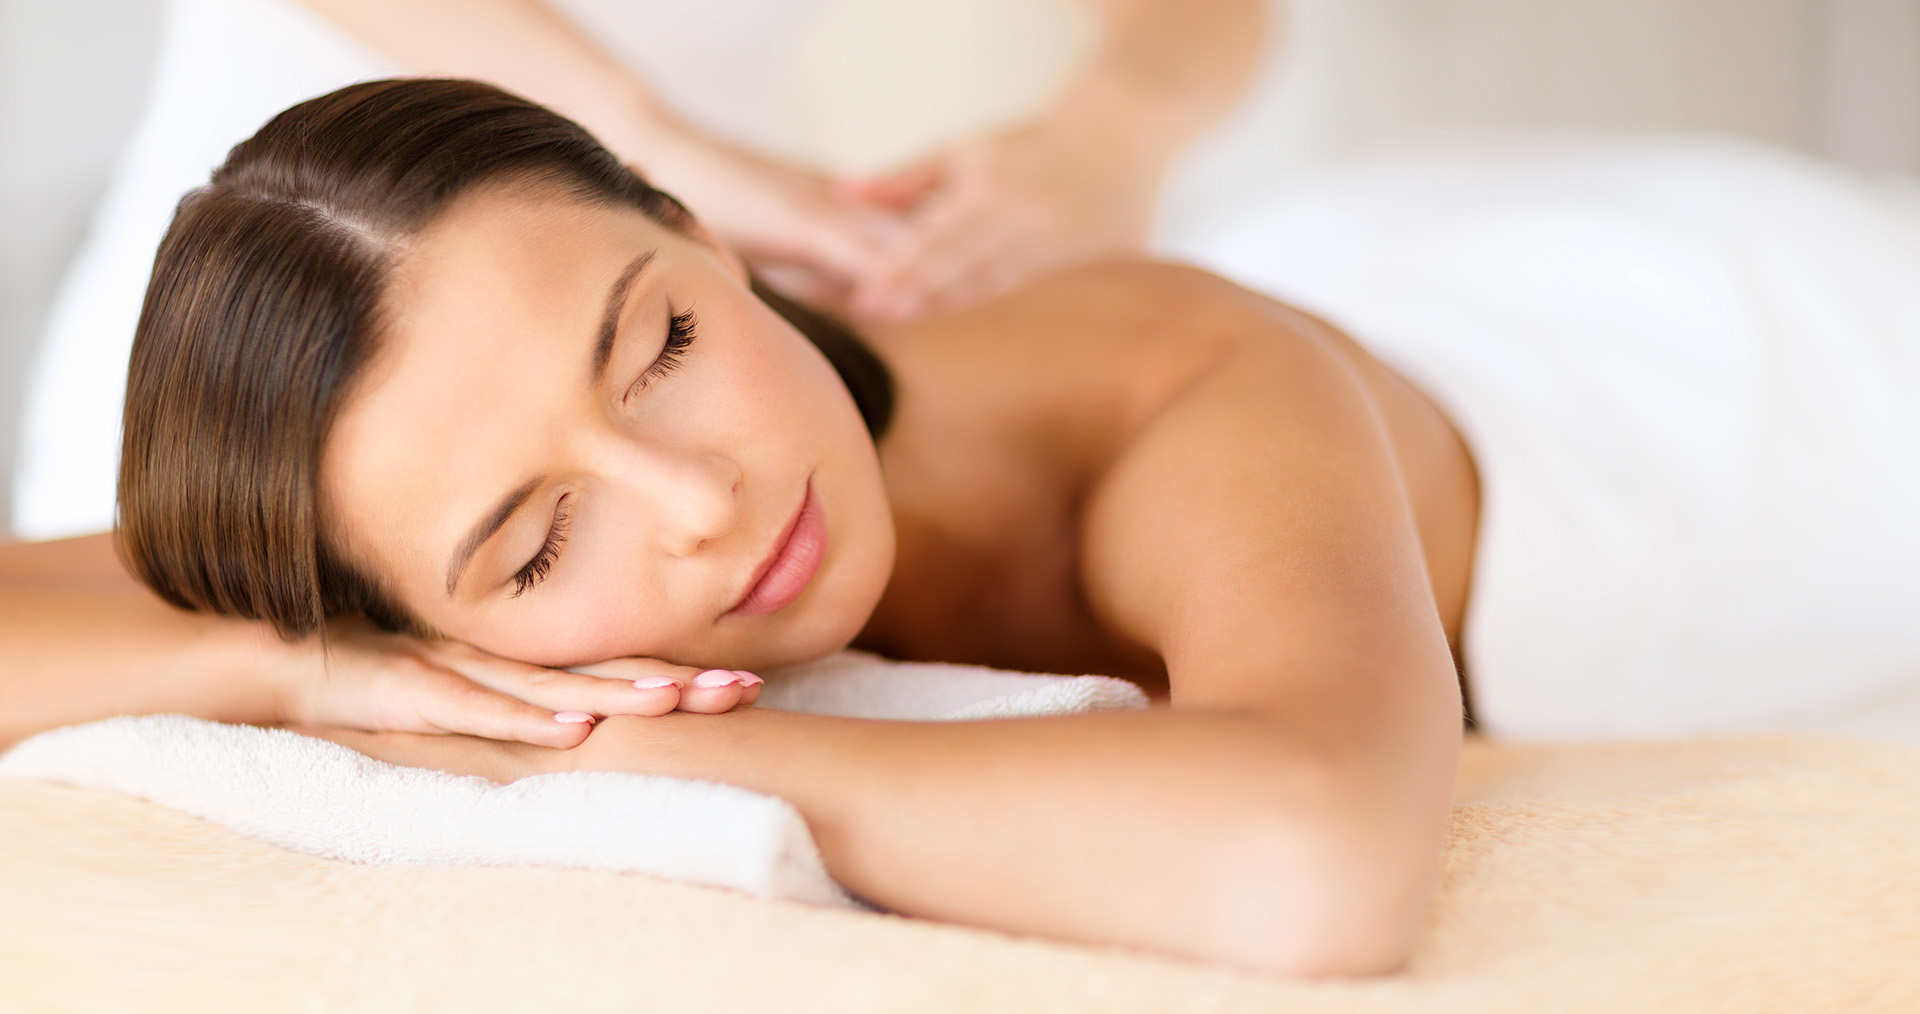 Los Angeles area spa offers Swedish Massage, Firm Pressure Massage, and Hot Stone Massage.